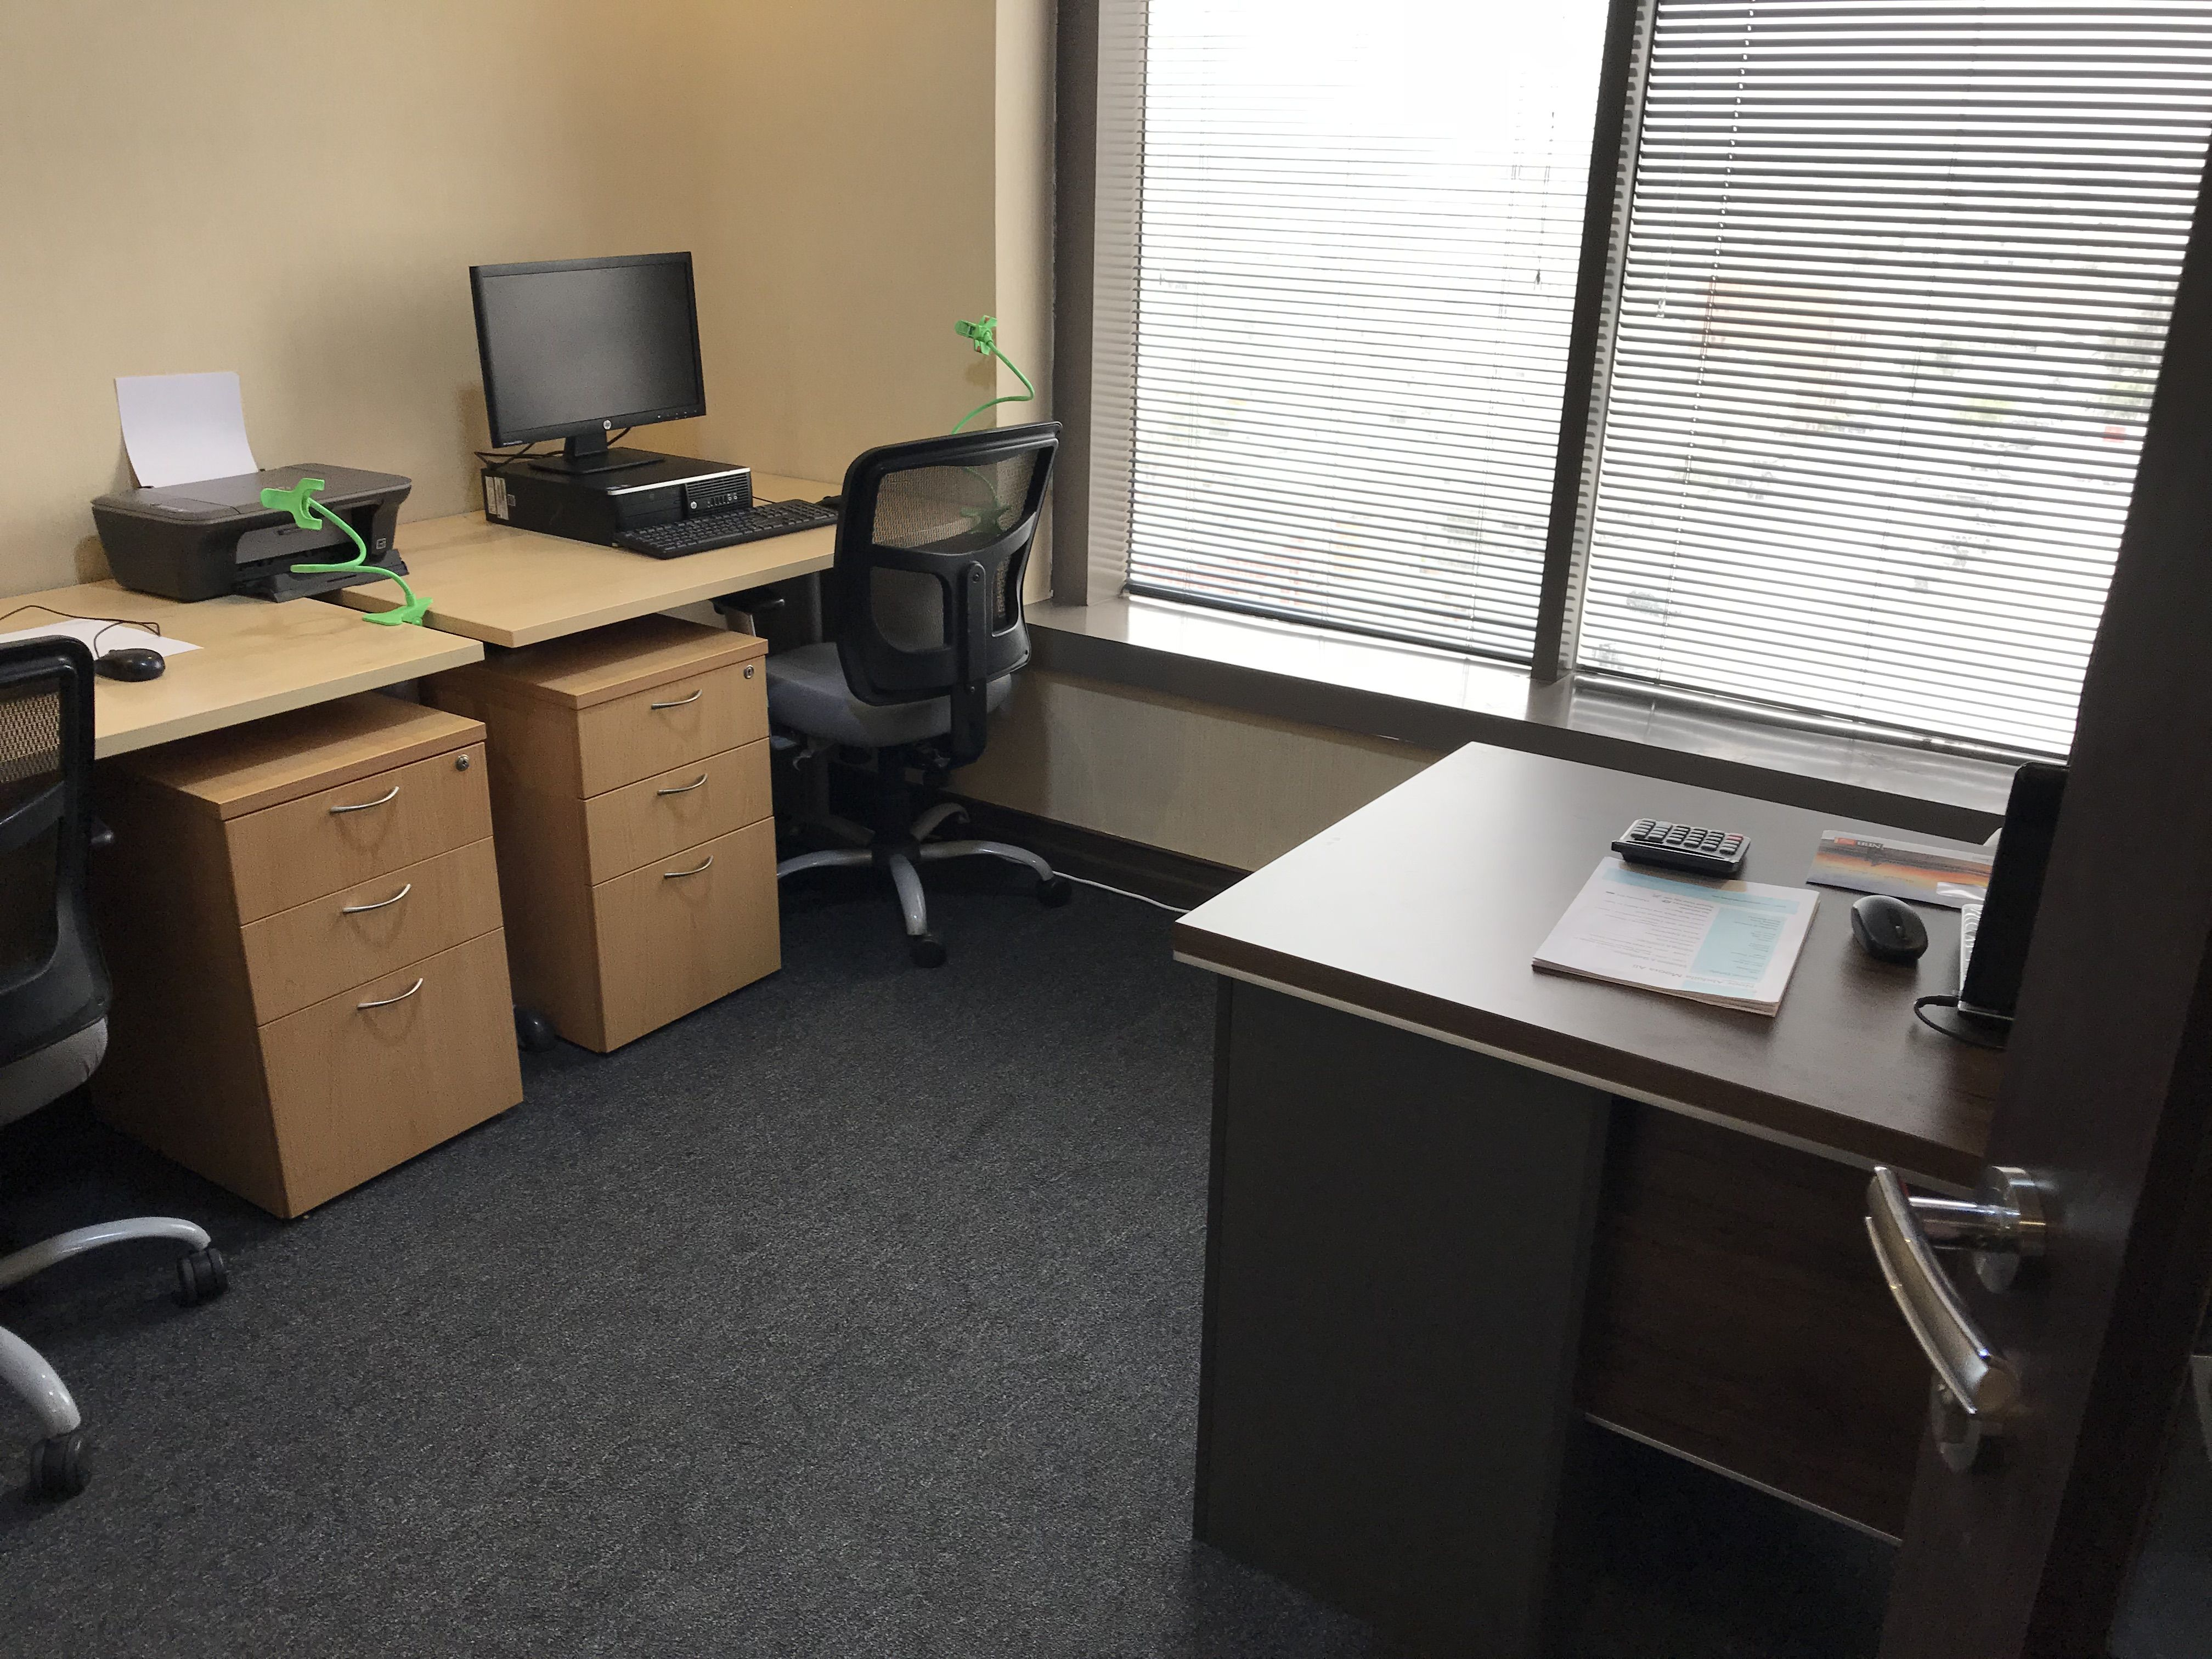 Looking For Small Office Space For Rent In Bahrain Modern Small Office Spaces Now Renting In Bahrain Good For Small Busi Small Office Small Space Office Rent